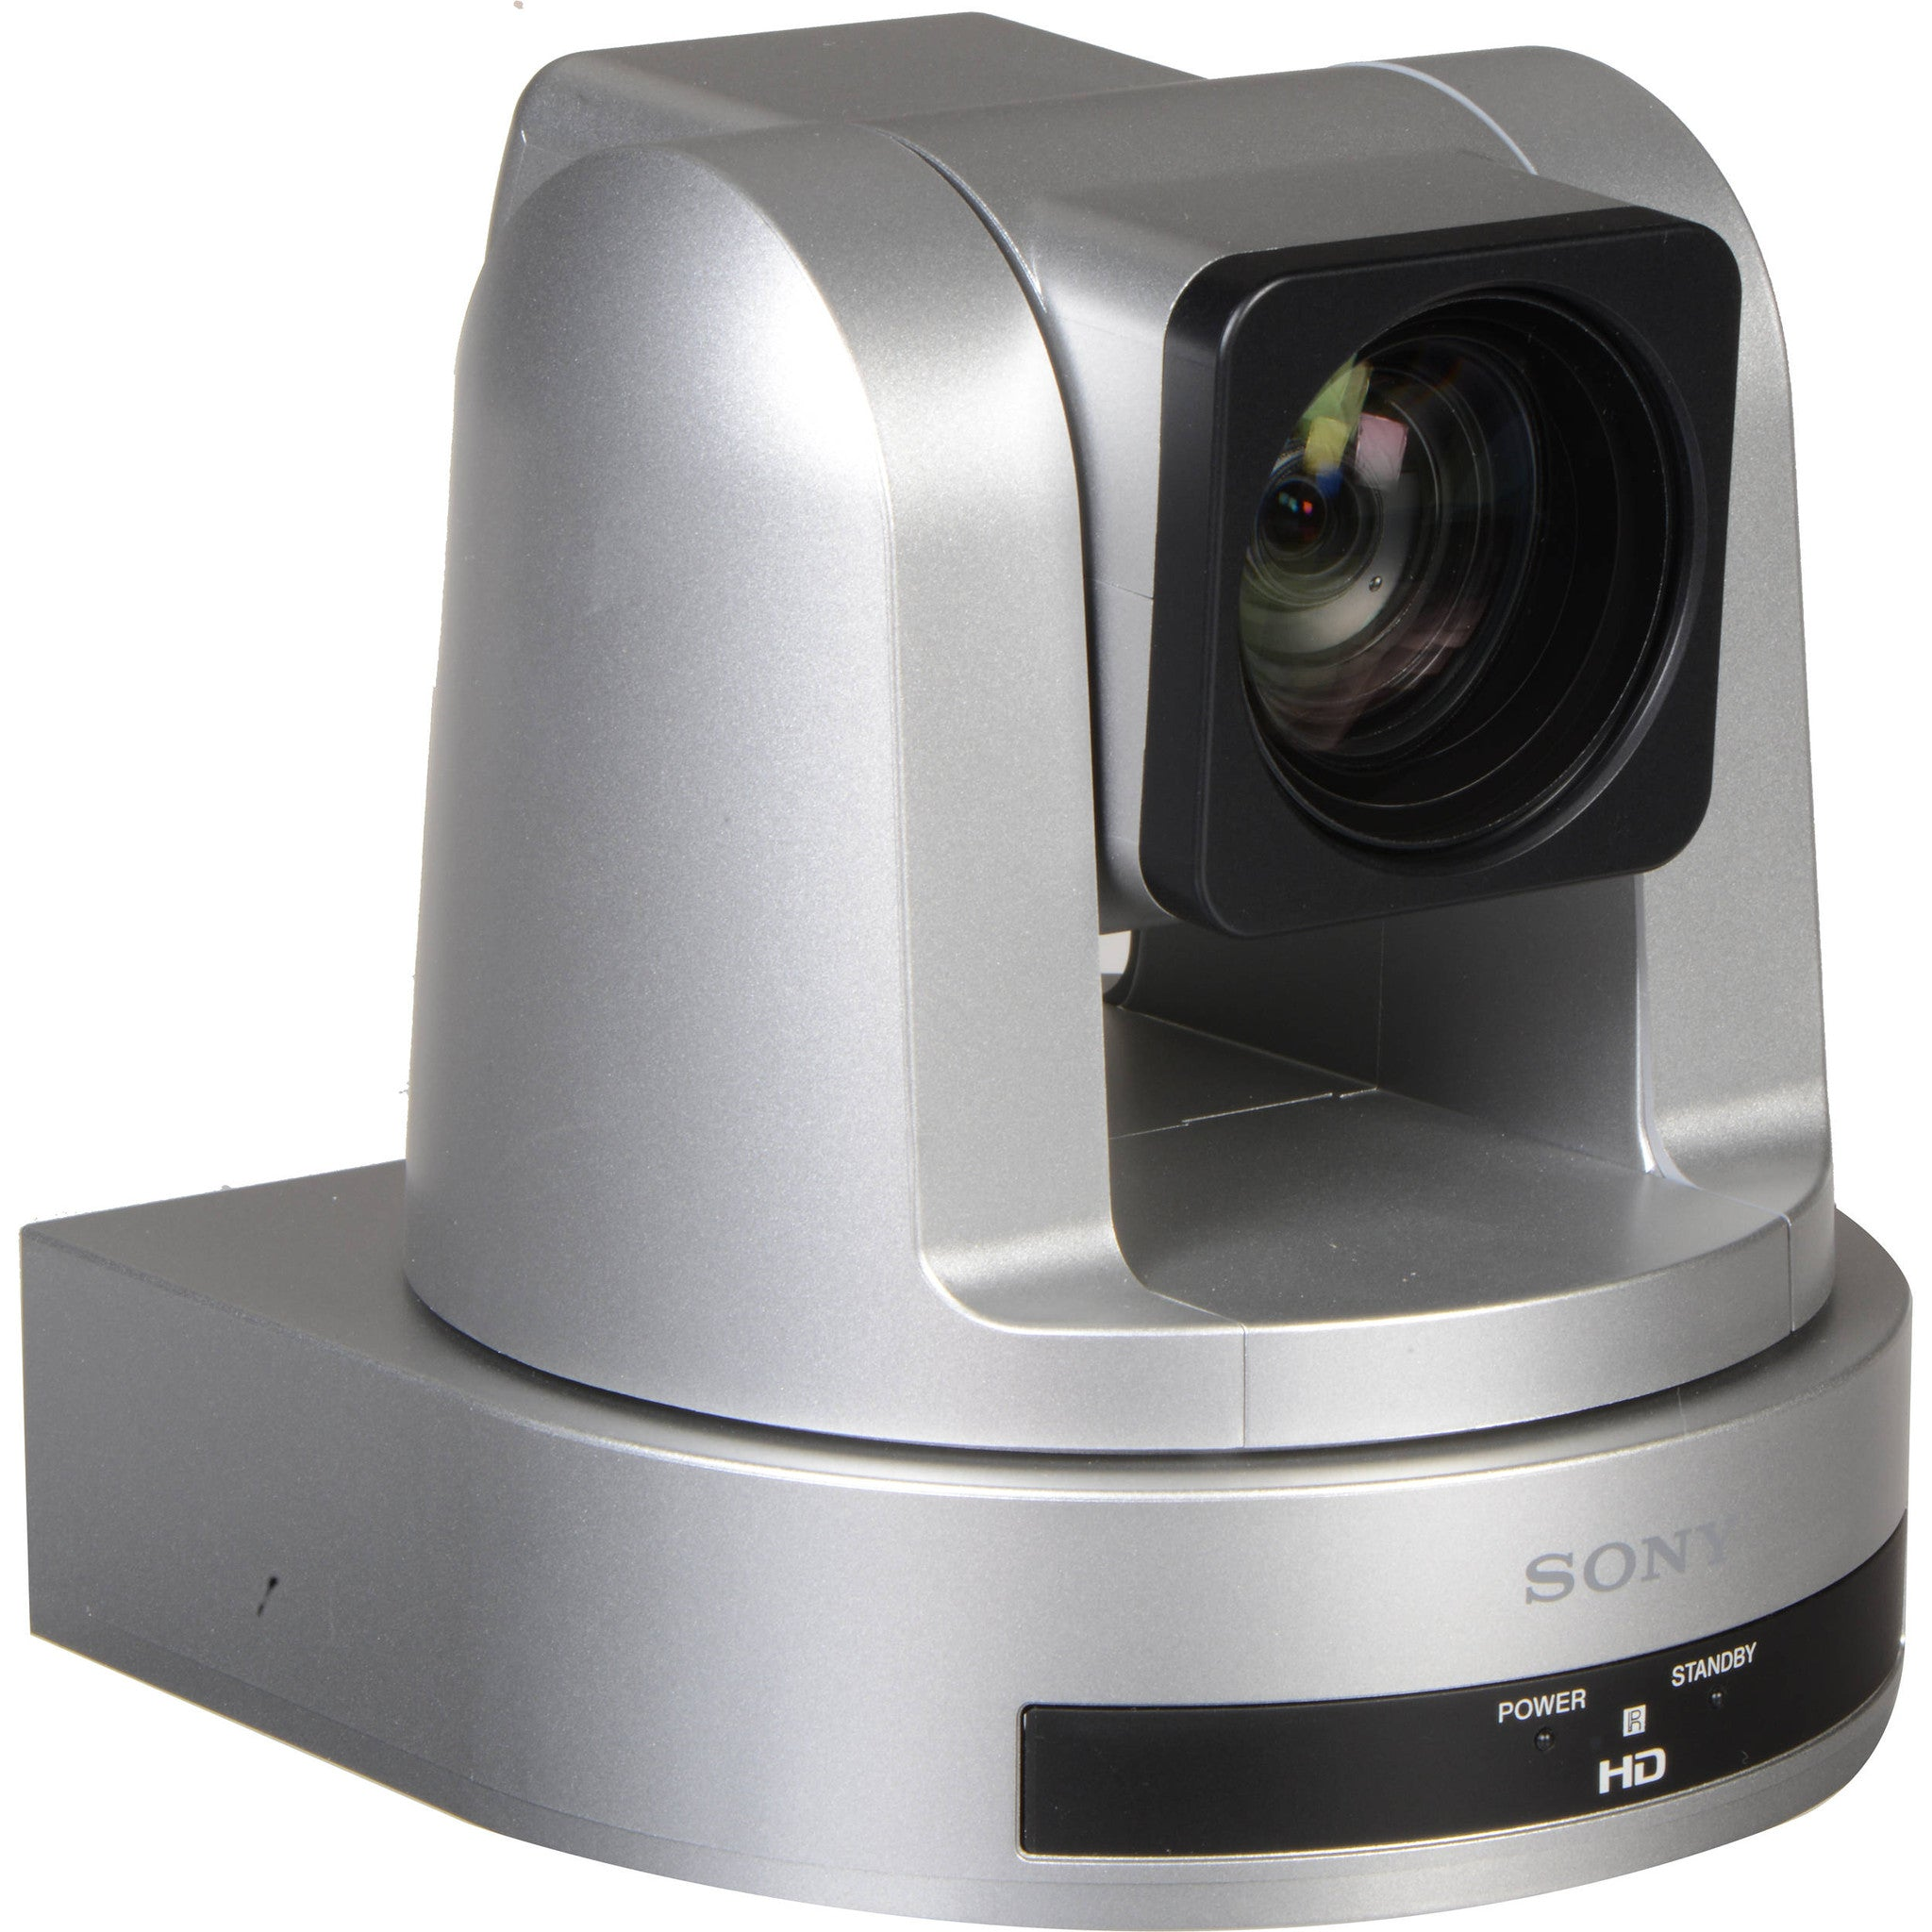 Sony SRG-120DS 12x PTZ Desktop Camera with SDI Output (Silver Housing)